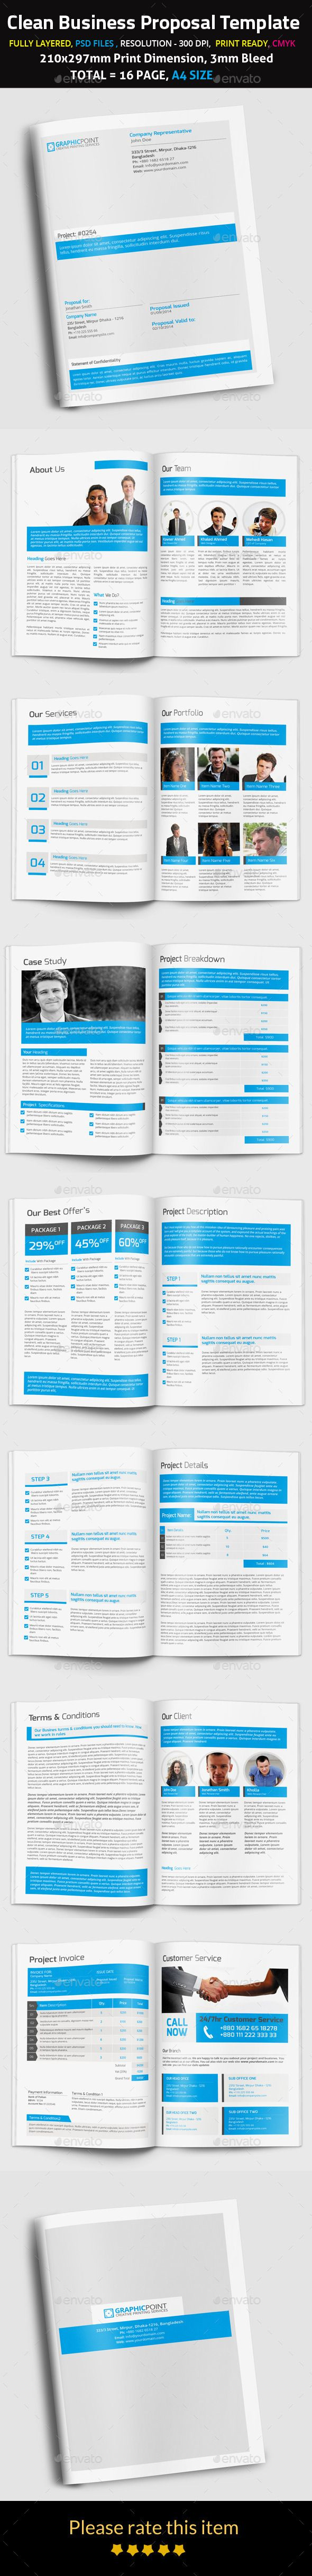 Commercial Proposal Format Mesmerizing 504 Best Business Proposal Images On Pinterest  Proposal Templates .